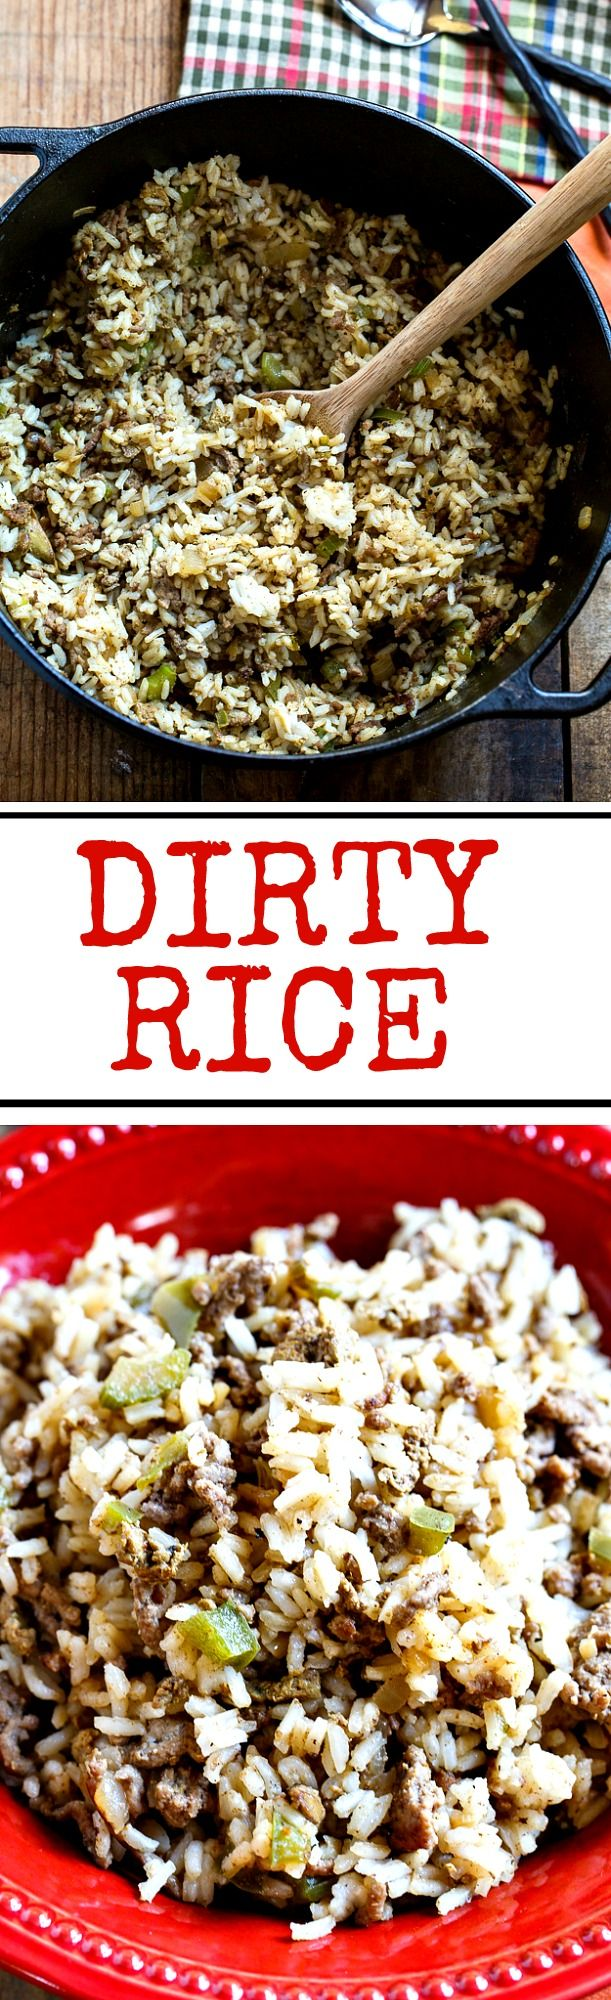 "Dirty Rice is a spicy and flavorful Cajun rice dish made from white rice. It gets its ""dirty"" color from finely chopped chicken livers and ground beef or pork."